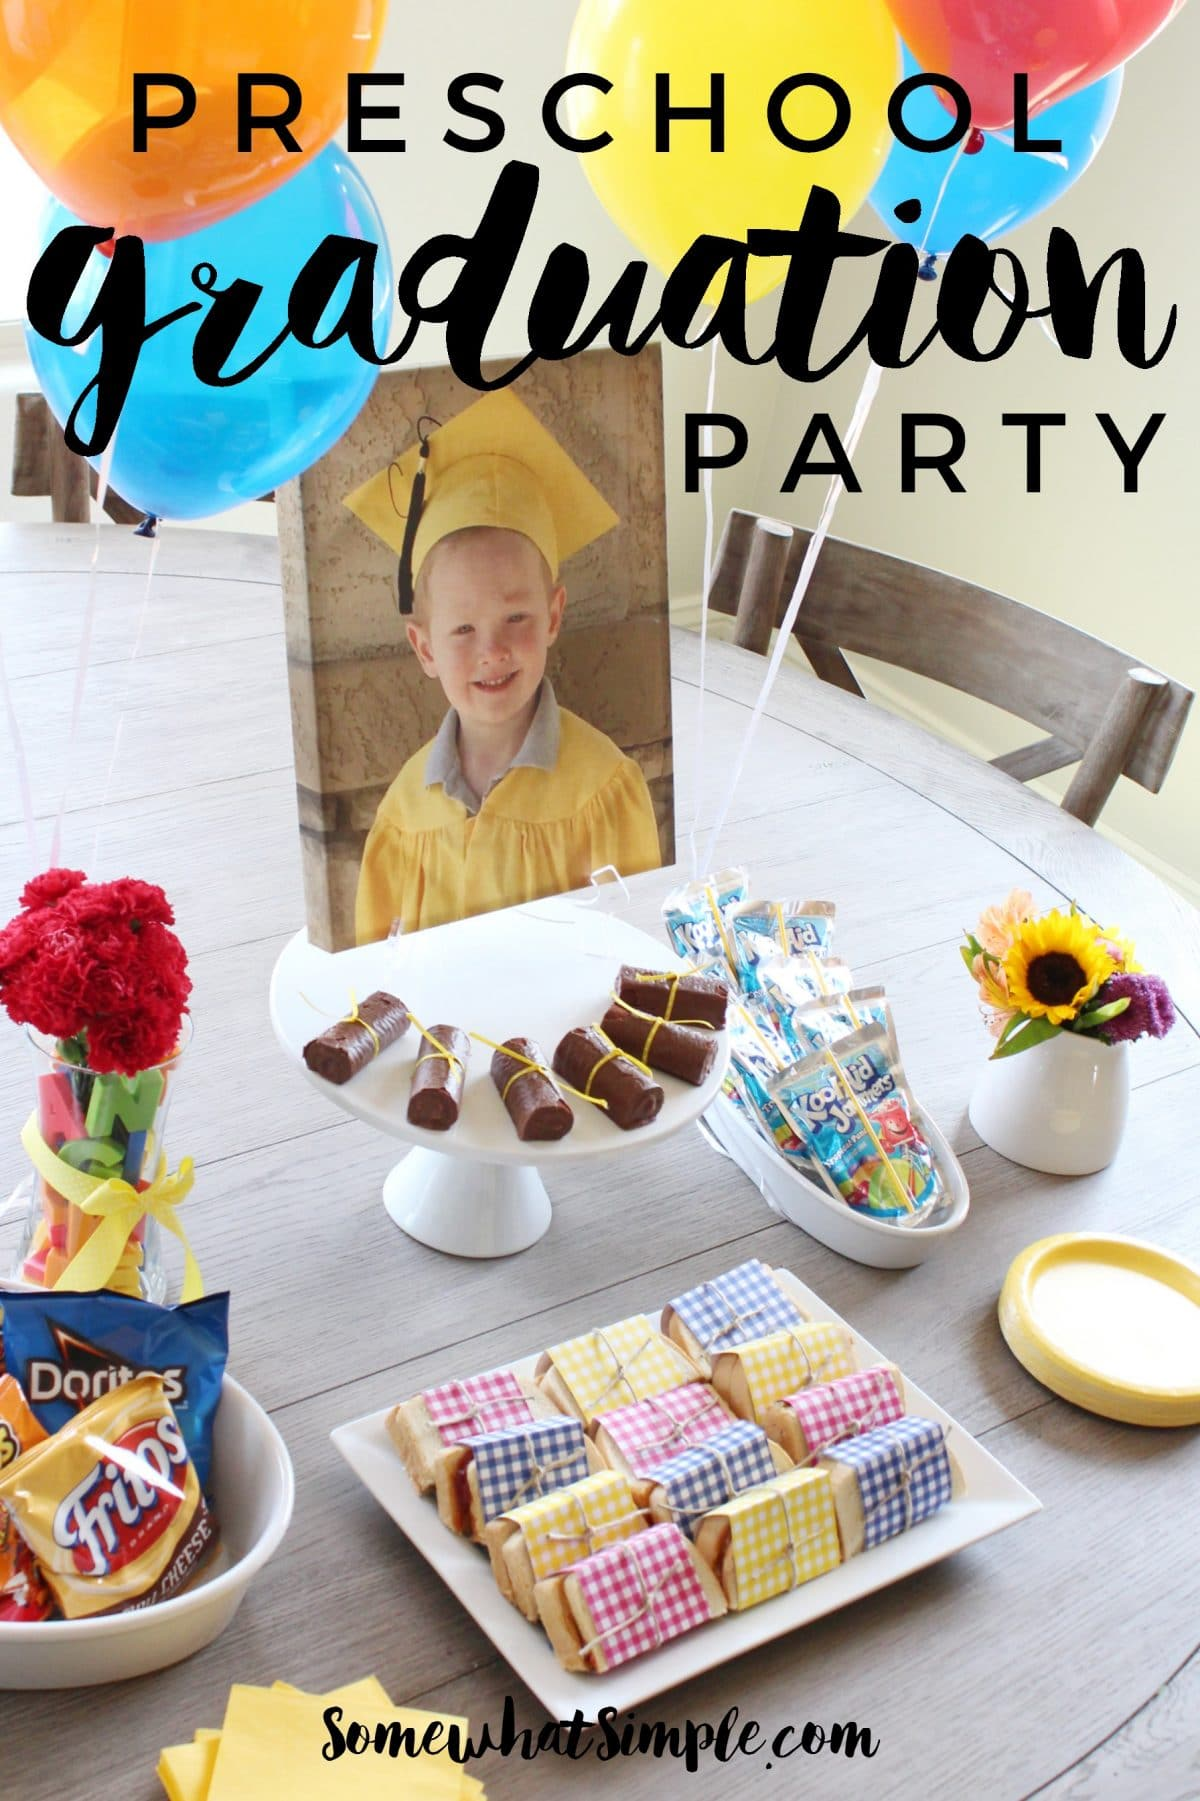 Preschool Graduation Party